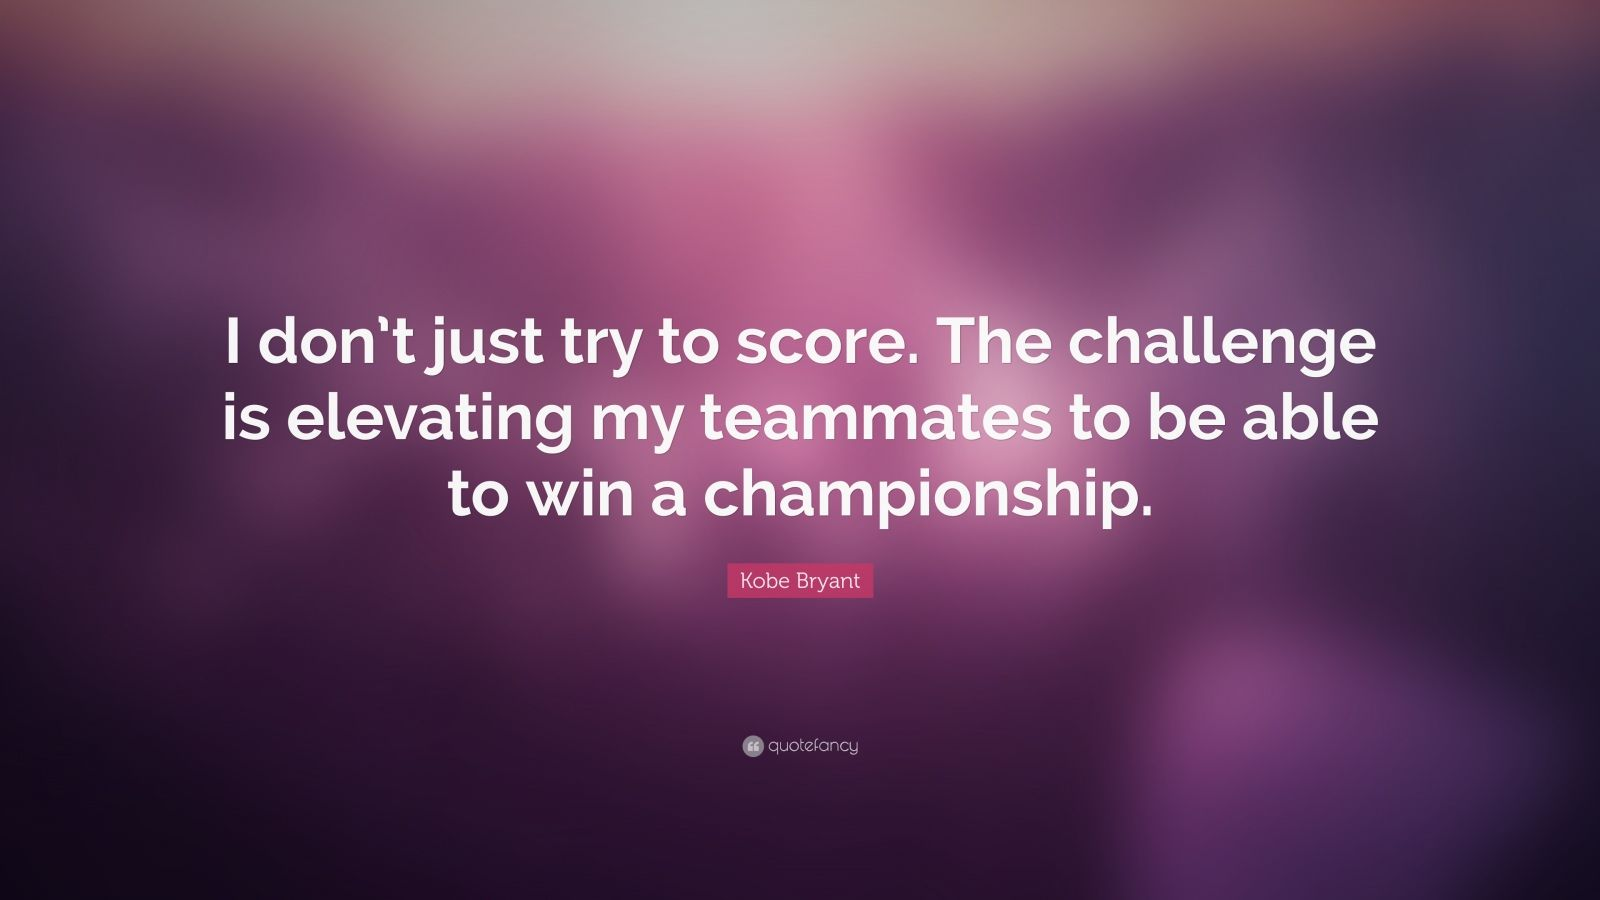 """Kobe Bryant Quote: """"I don't just try to score. The challenge is elevating my teammates to be able to win a championship."""""""